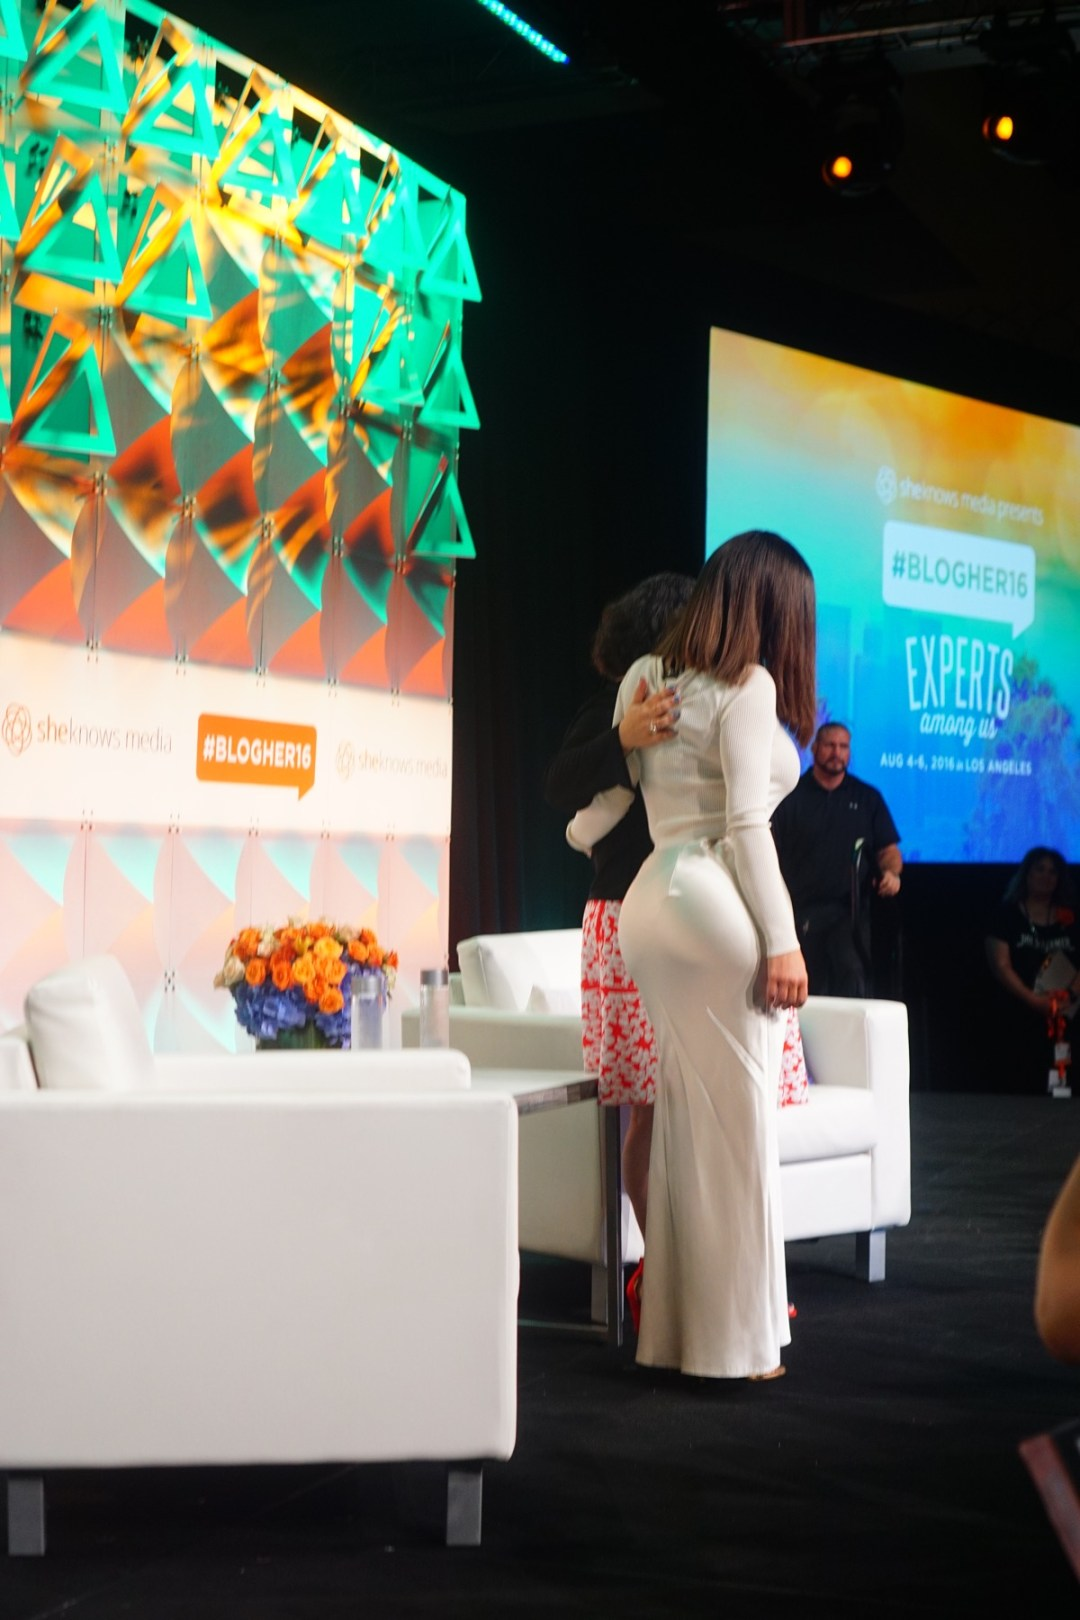 Why Going to #BlogHer16 Alone Worked In My Favor